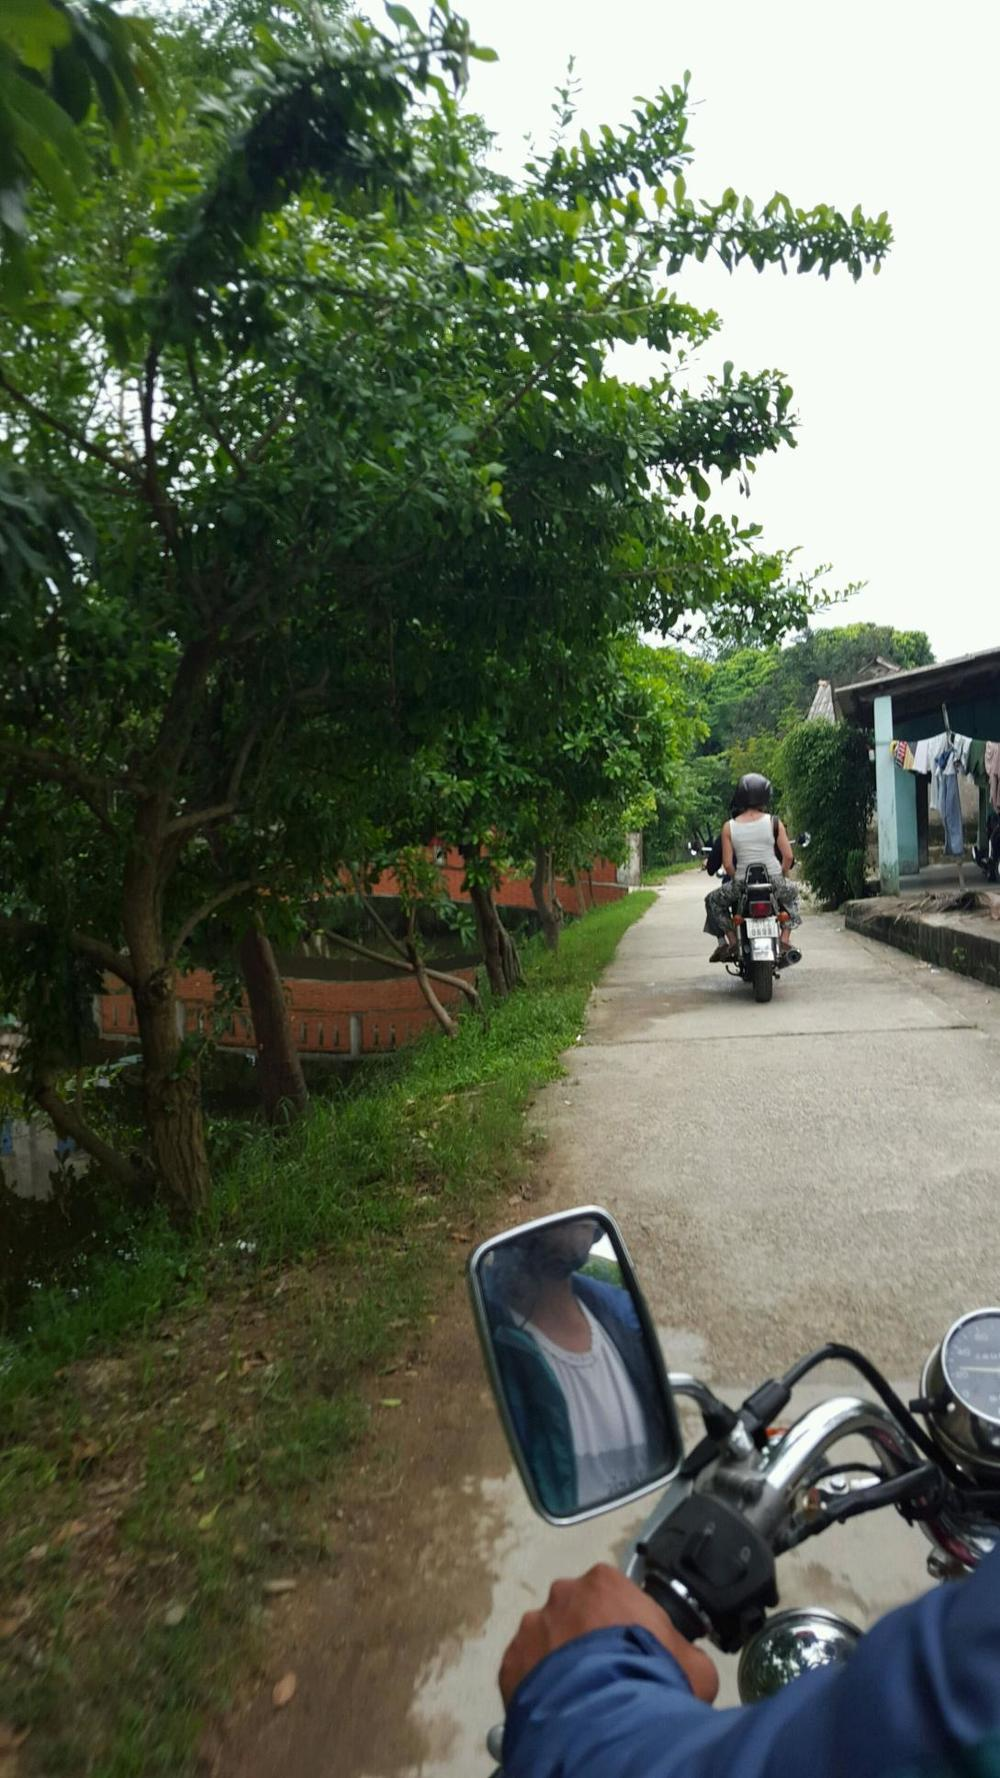 Hue Riders takes you off the beaten path through small villages